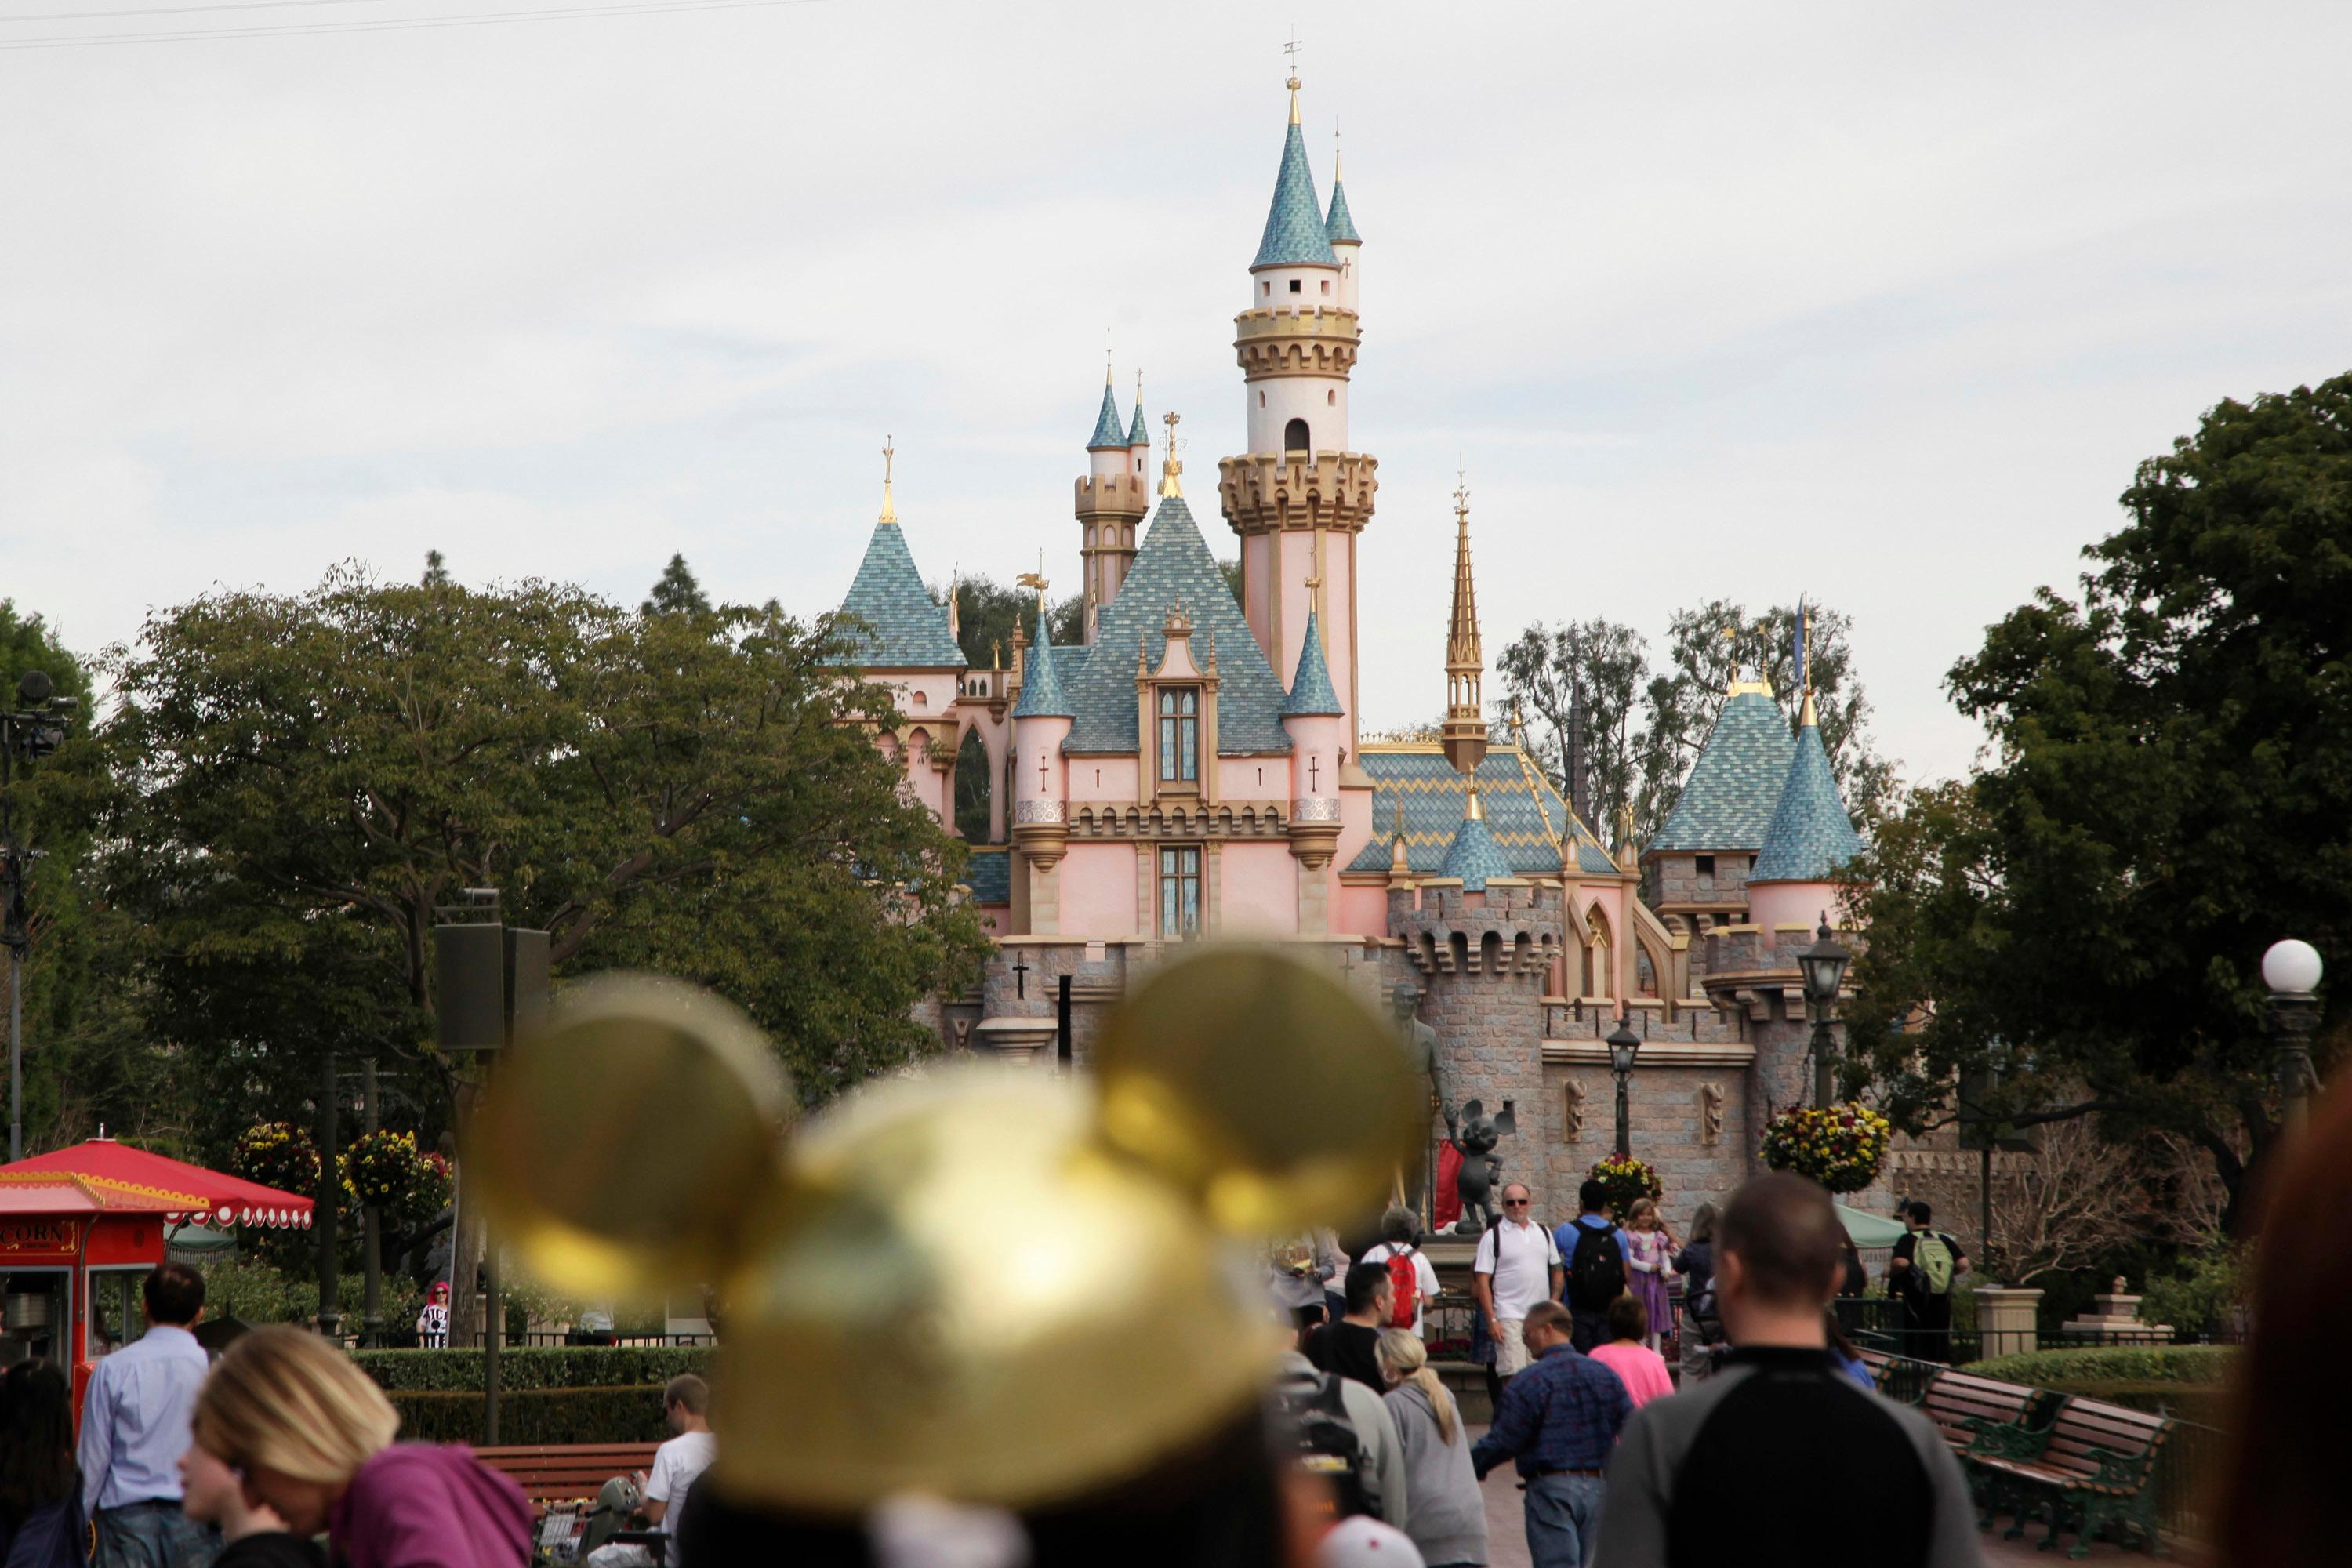 FILE - This Jan. 22, 2015 file photo shows Sleeping Beauty's Castle at the Disneyland theme park in Anaheim, Calif. In response to a Los Angeles Times series about the relationship between the Walt Disney Co. and the city of Anaheim, the company is barring the paper from advance screenings of its films. The paper ran a two-part series in late September 2017 looking into what it characterized as a complicated and increasingly tense relationship between the city and the Disneyland Resort. (AP Photo/Jae C. Hong, File)